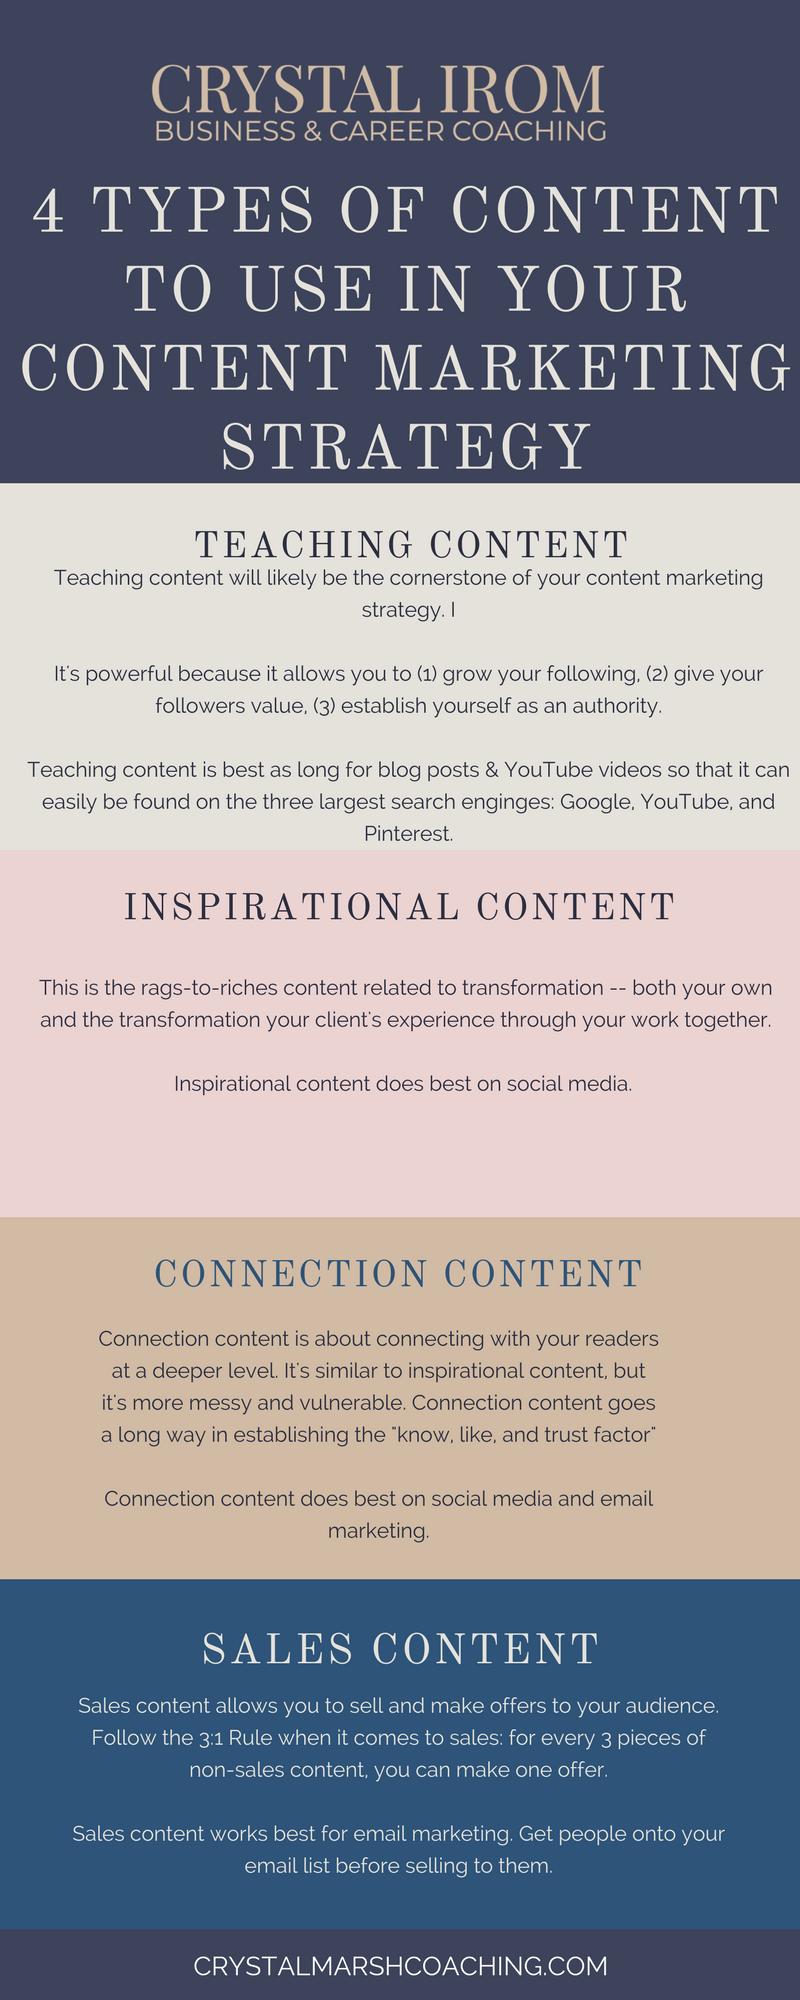 4 types of content to use in your content marketing.png